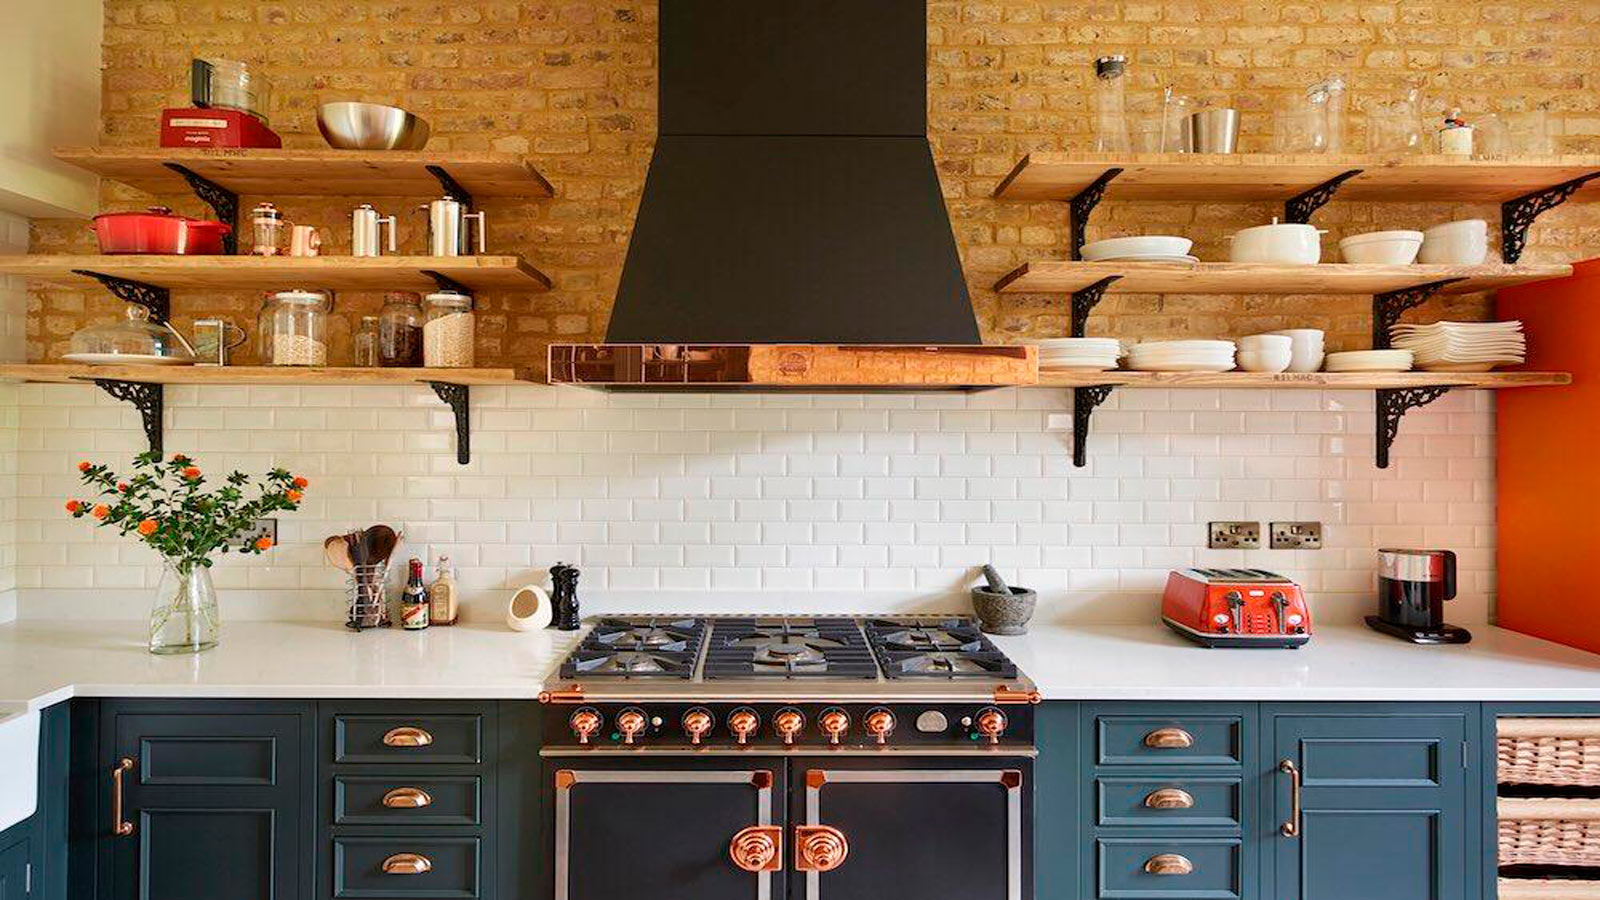 The everlasting appeal of Subway tiles